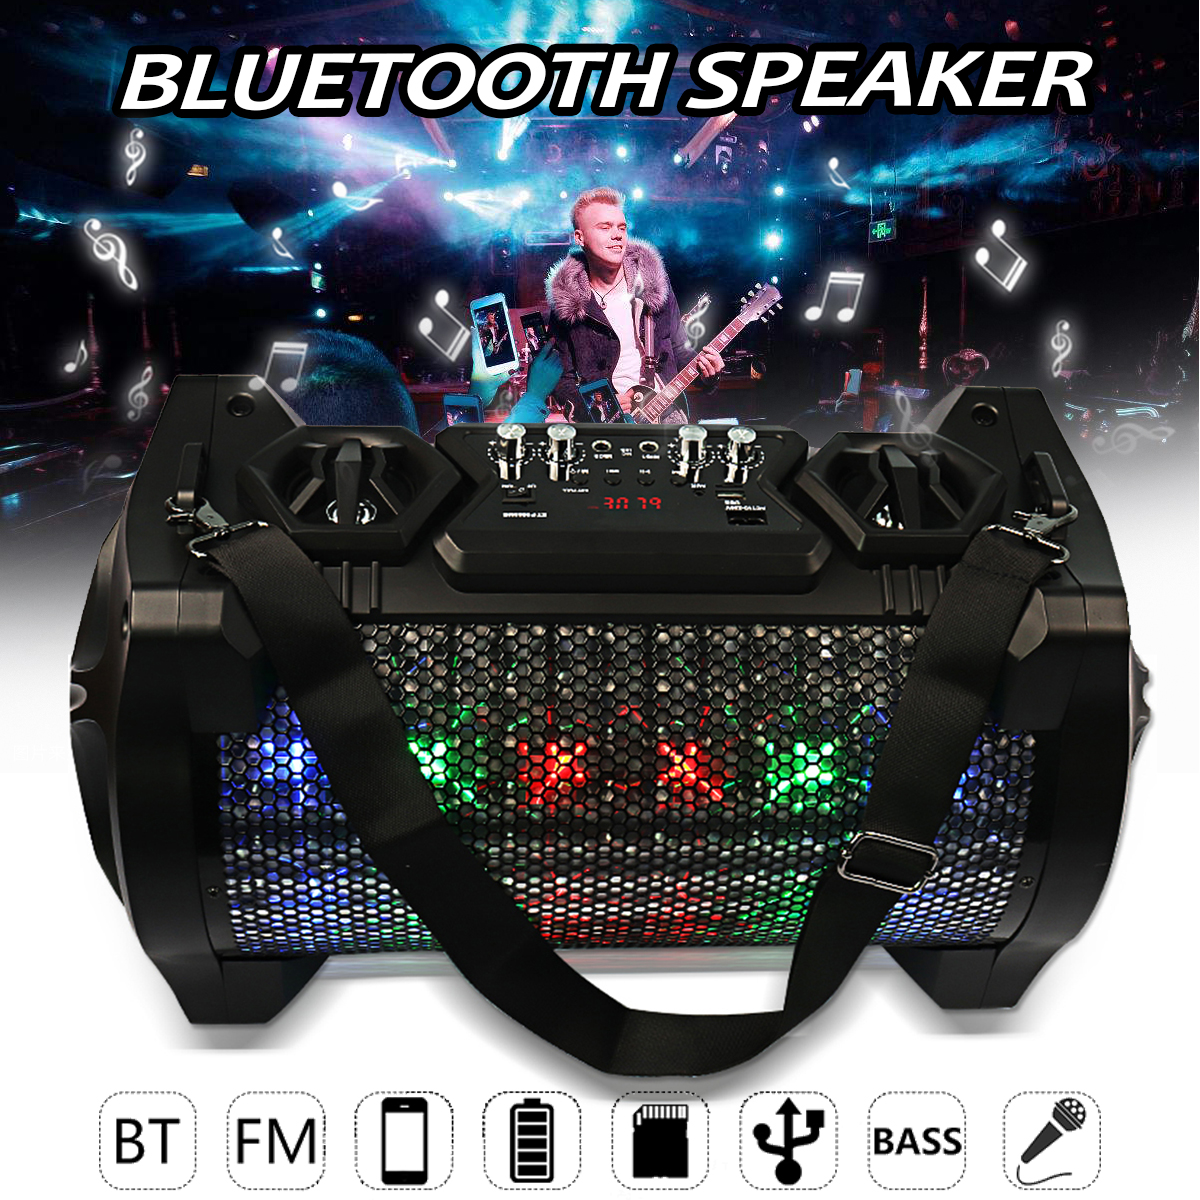 Portable Wireless Bluetooth Speaker Bass Stereo FM Radio AUX/USB/TF Card Loudspeaker Subwoofer Handfree For Outdoor Music Player